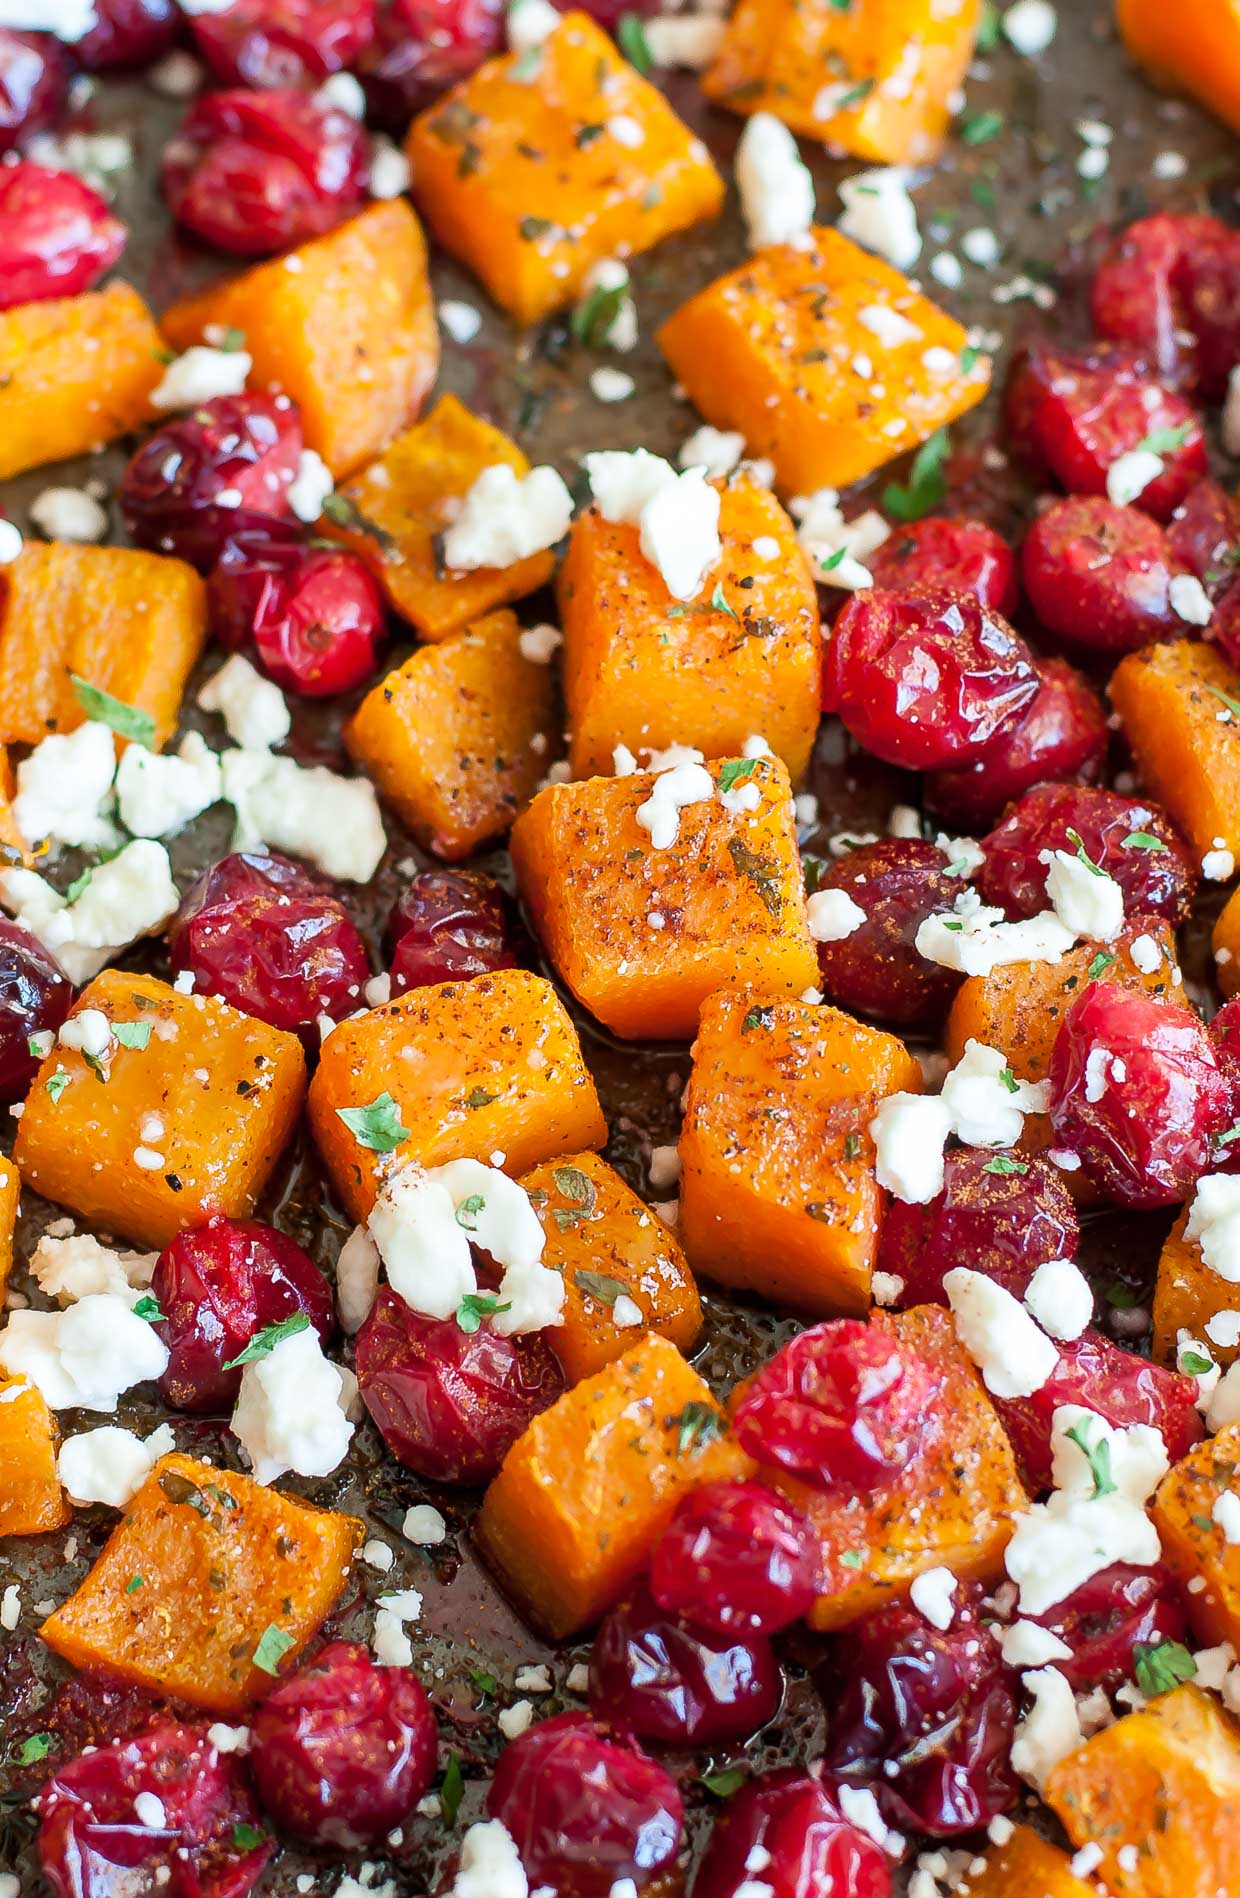 Honey Roasted Butternut Squash with Cranberries Honey Roasted Butternut Squash with Cranberries new foto